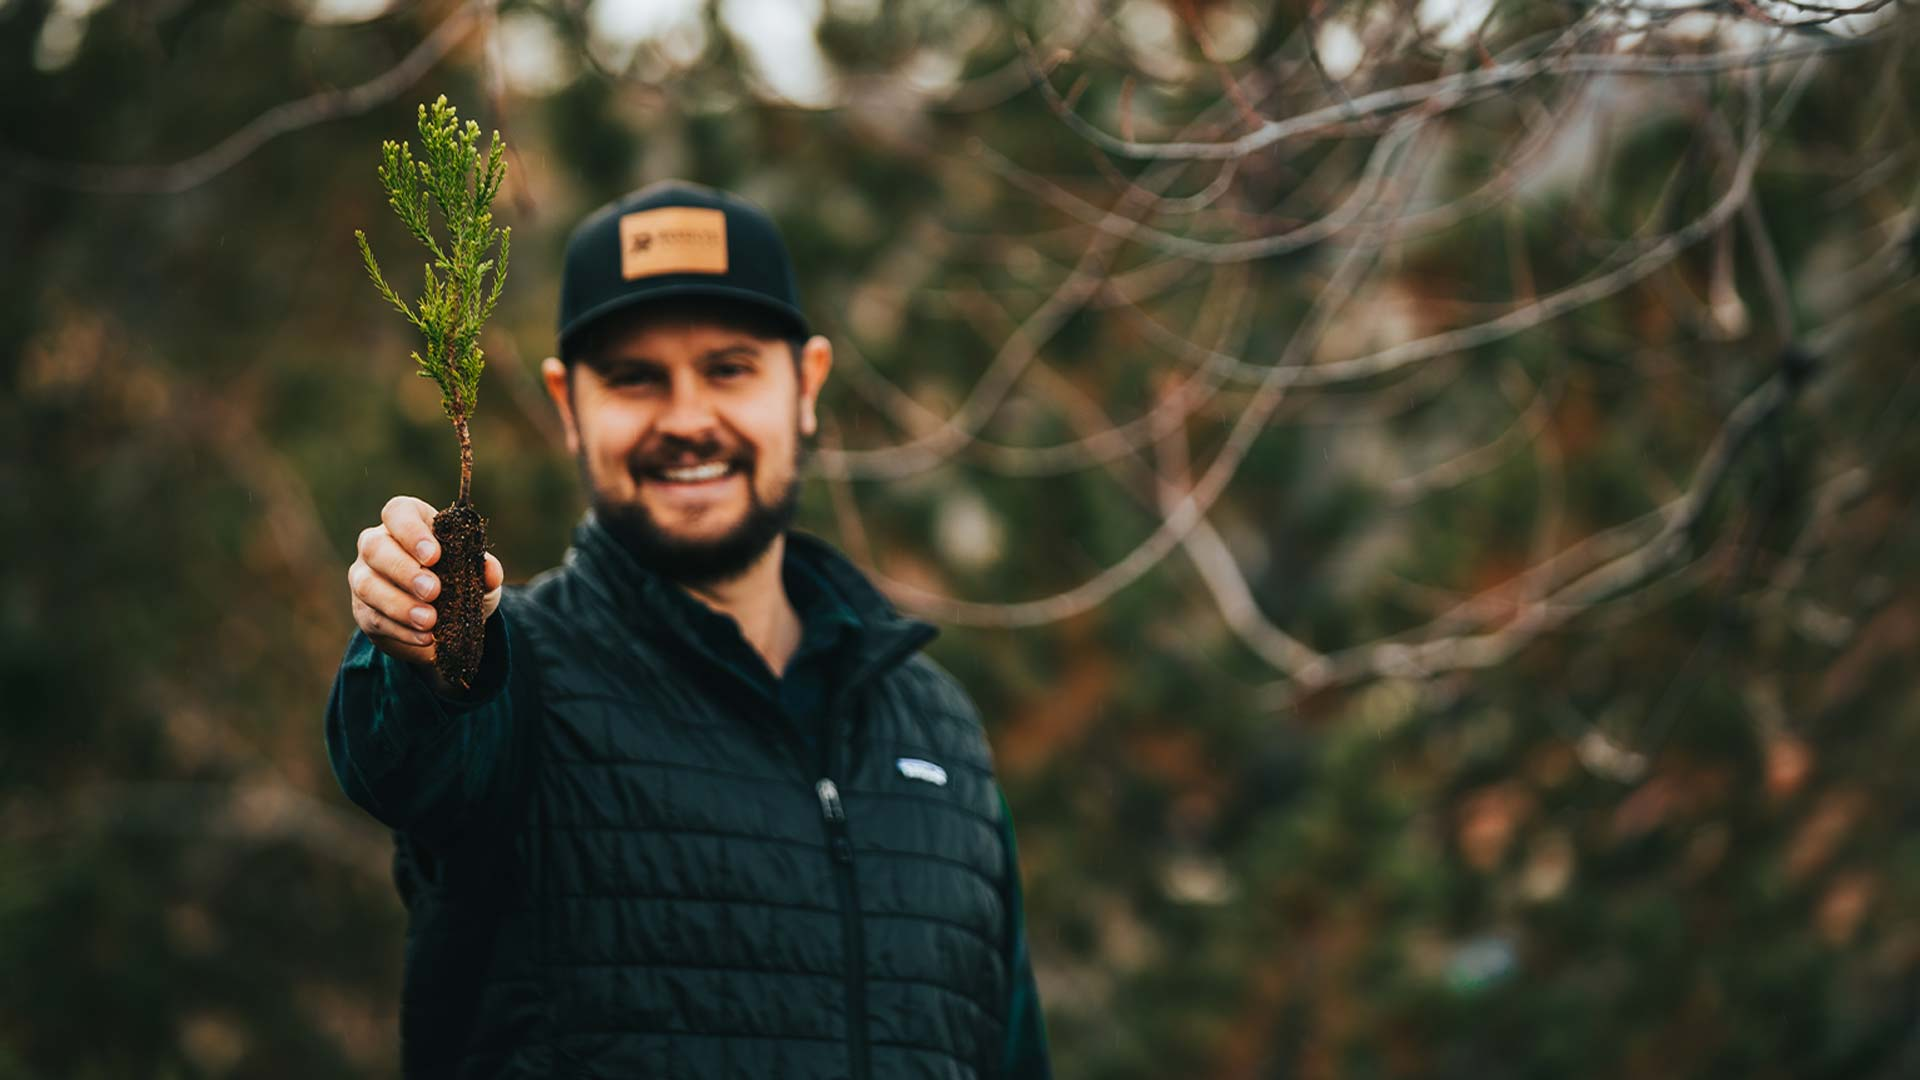 S3:E1 Planting Trees with One Tree Planted Founder, Matt Hill